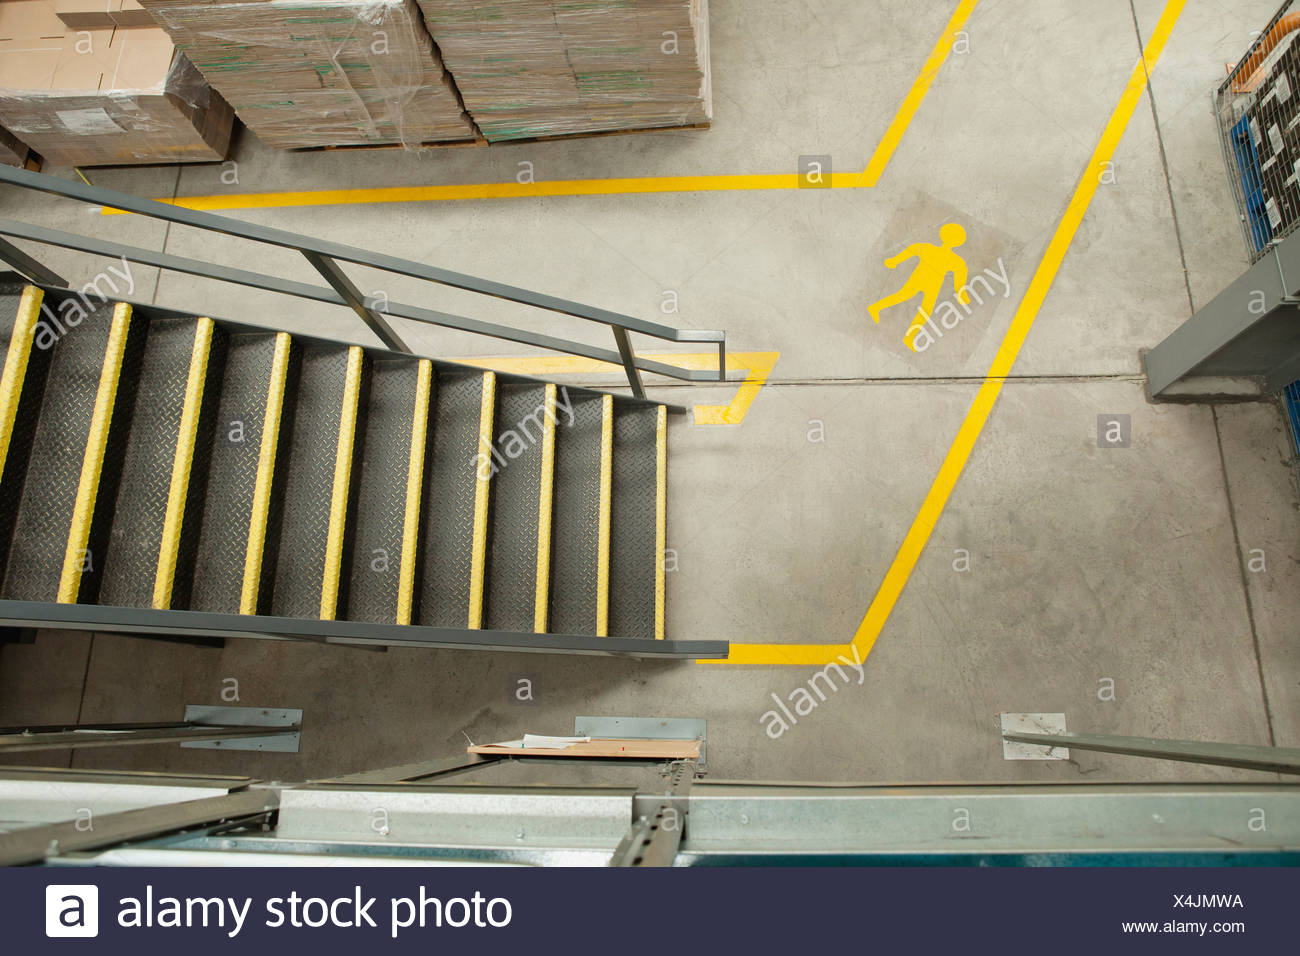 Steps and yellow lines in warehouse, elevated view - Stock Image